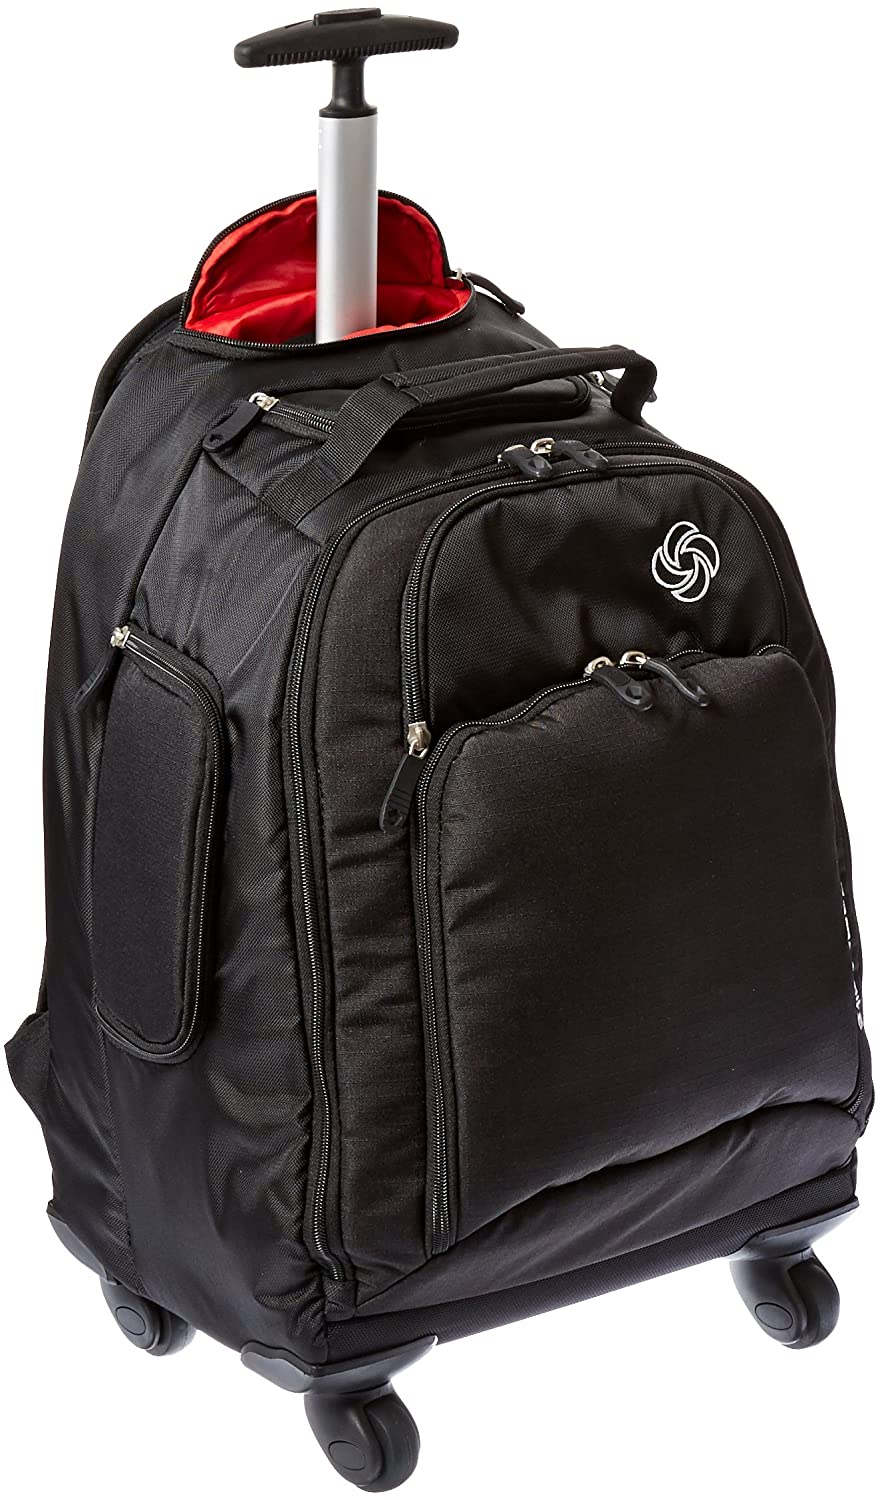 Amazon.com: Samsonite Luggage Mvs Spinner Backpack, Black, 19 Inch ...